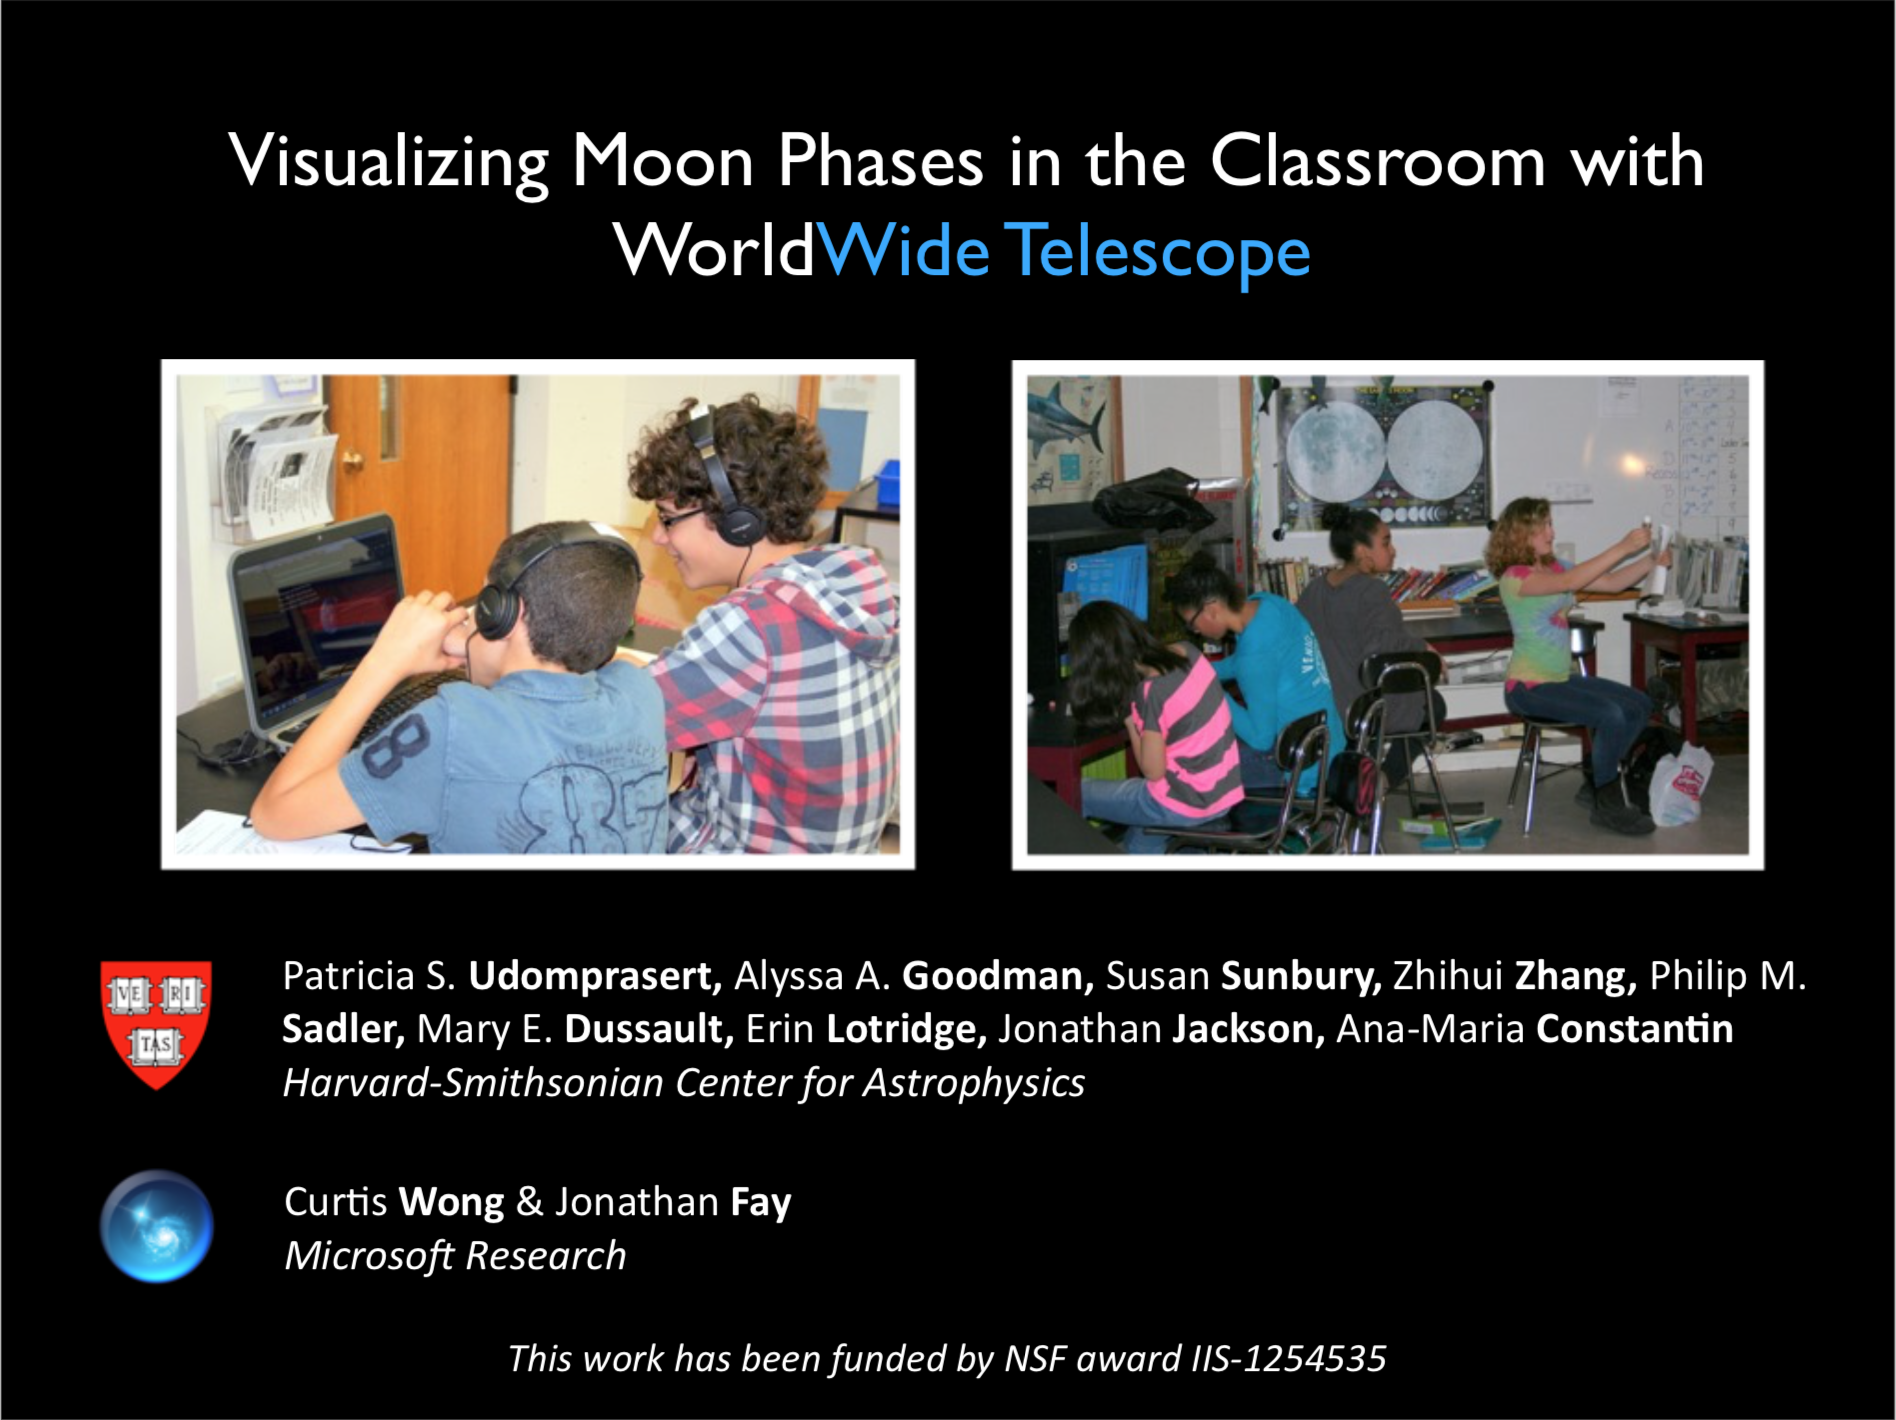 2014 Visualizing Moon Phases presentation